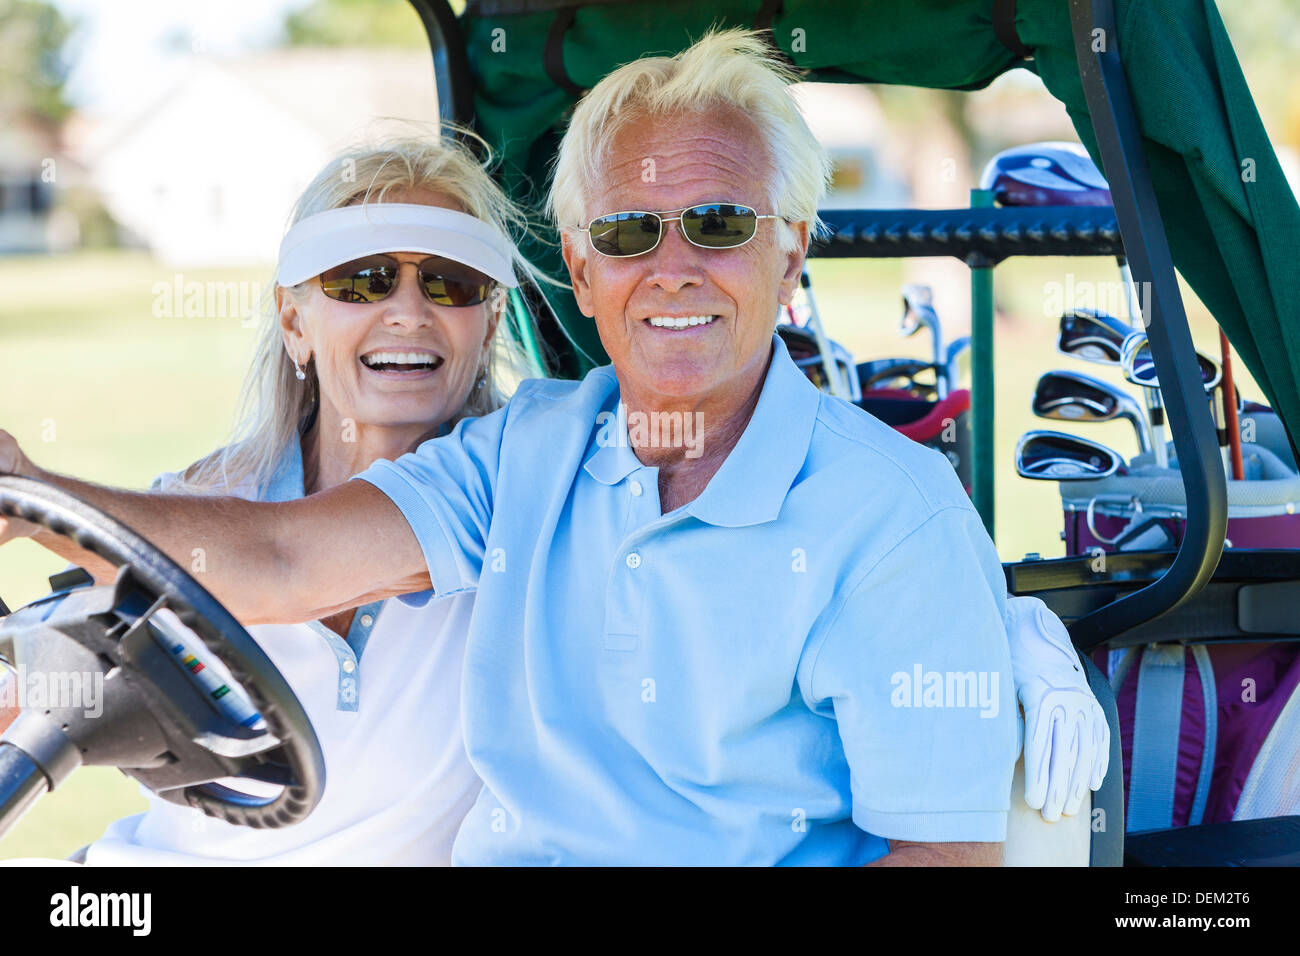 Old Couple Golf Cart Stock Photos & Old Couple Golf Cart Stock ... on black golf cart, boy golf cart, vampire golf cart, girl golf cart, married golf cart, vintage golf cart, pregnant golf cart, celebrity golf cart, fat golf cart, wife golf cart, public golf cart, japanese golf cart, midget golf cart, russian golf cart, swedish golf cart, mexican golf cart, medical golf cart, pantyhose golf cart, outdoor golf cart, italian golf cart,